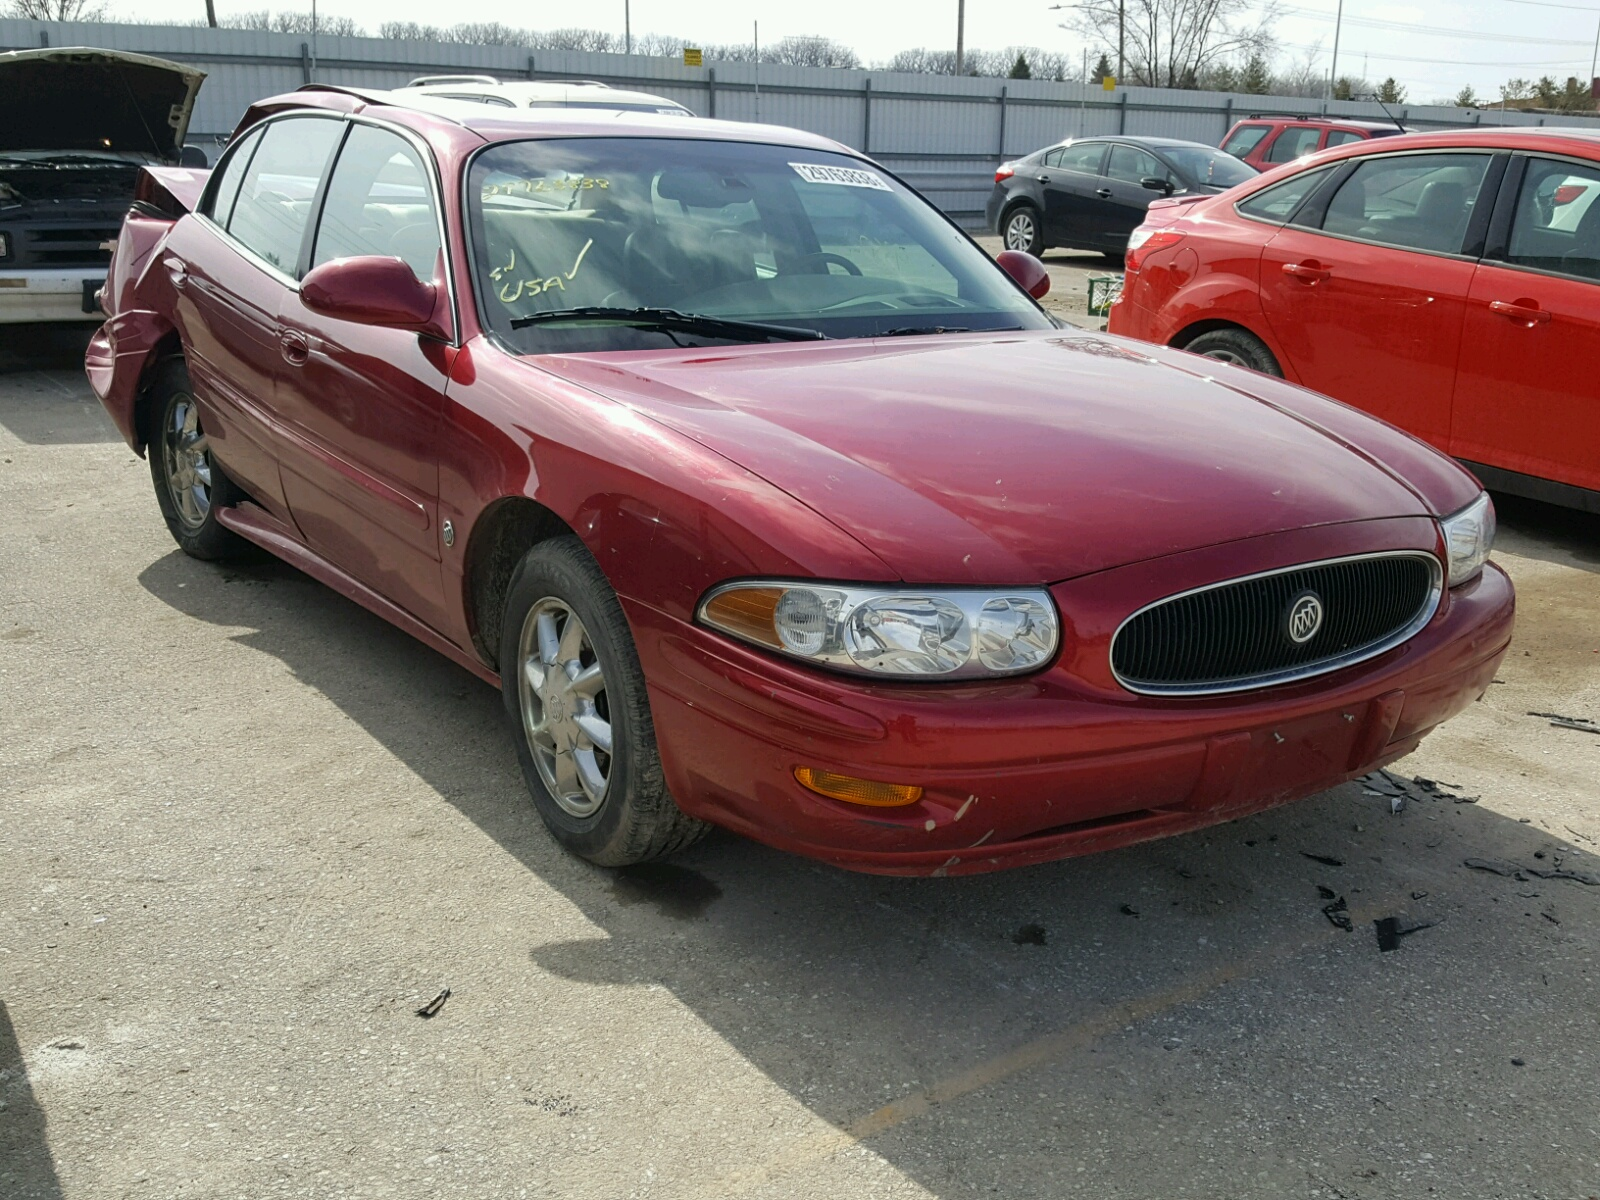 lesabre limited cars cargurus buick overview pic